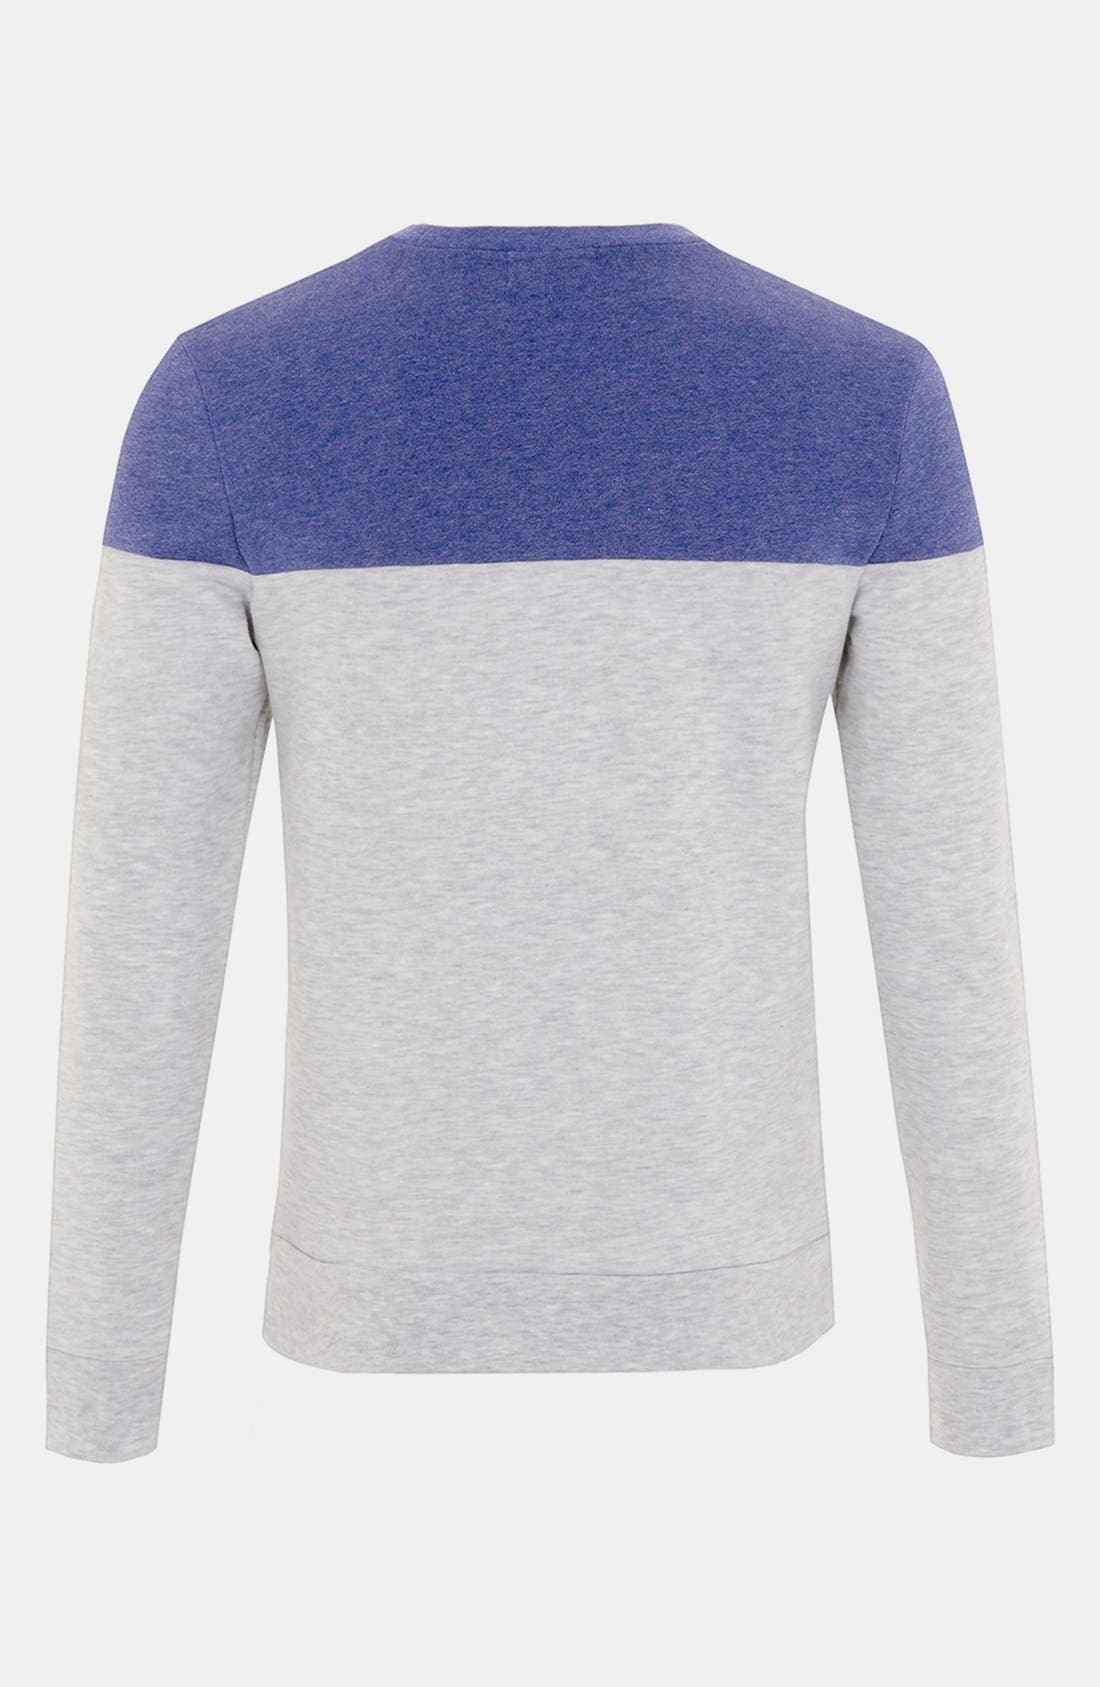 Alternate Image 2  - Topman Cut & Sew Crewneck Sweatshirt